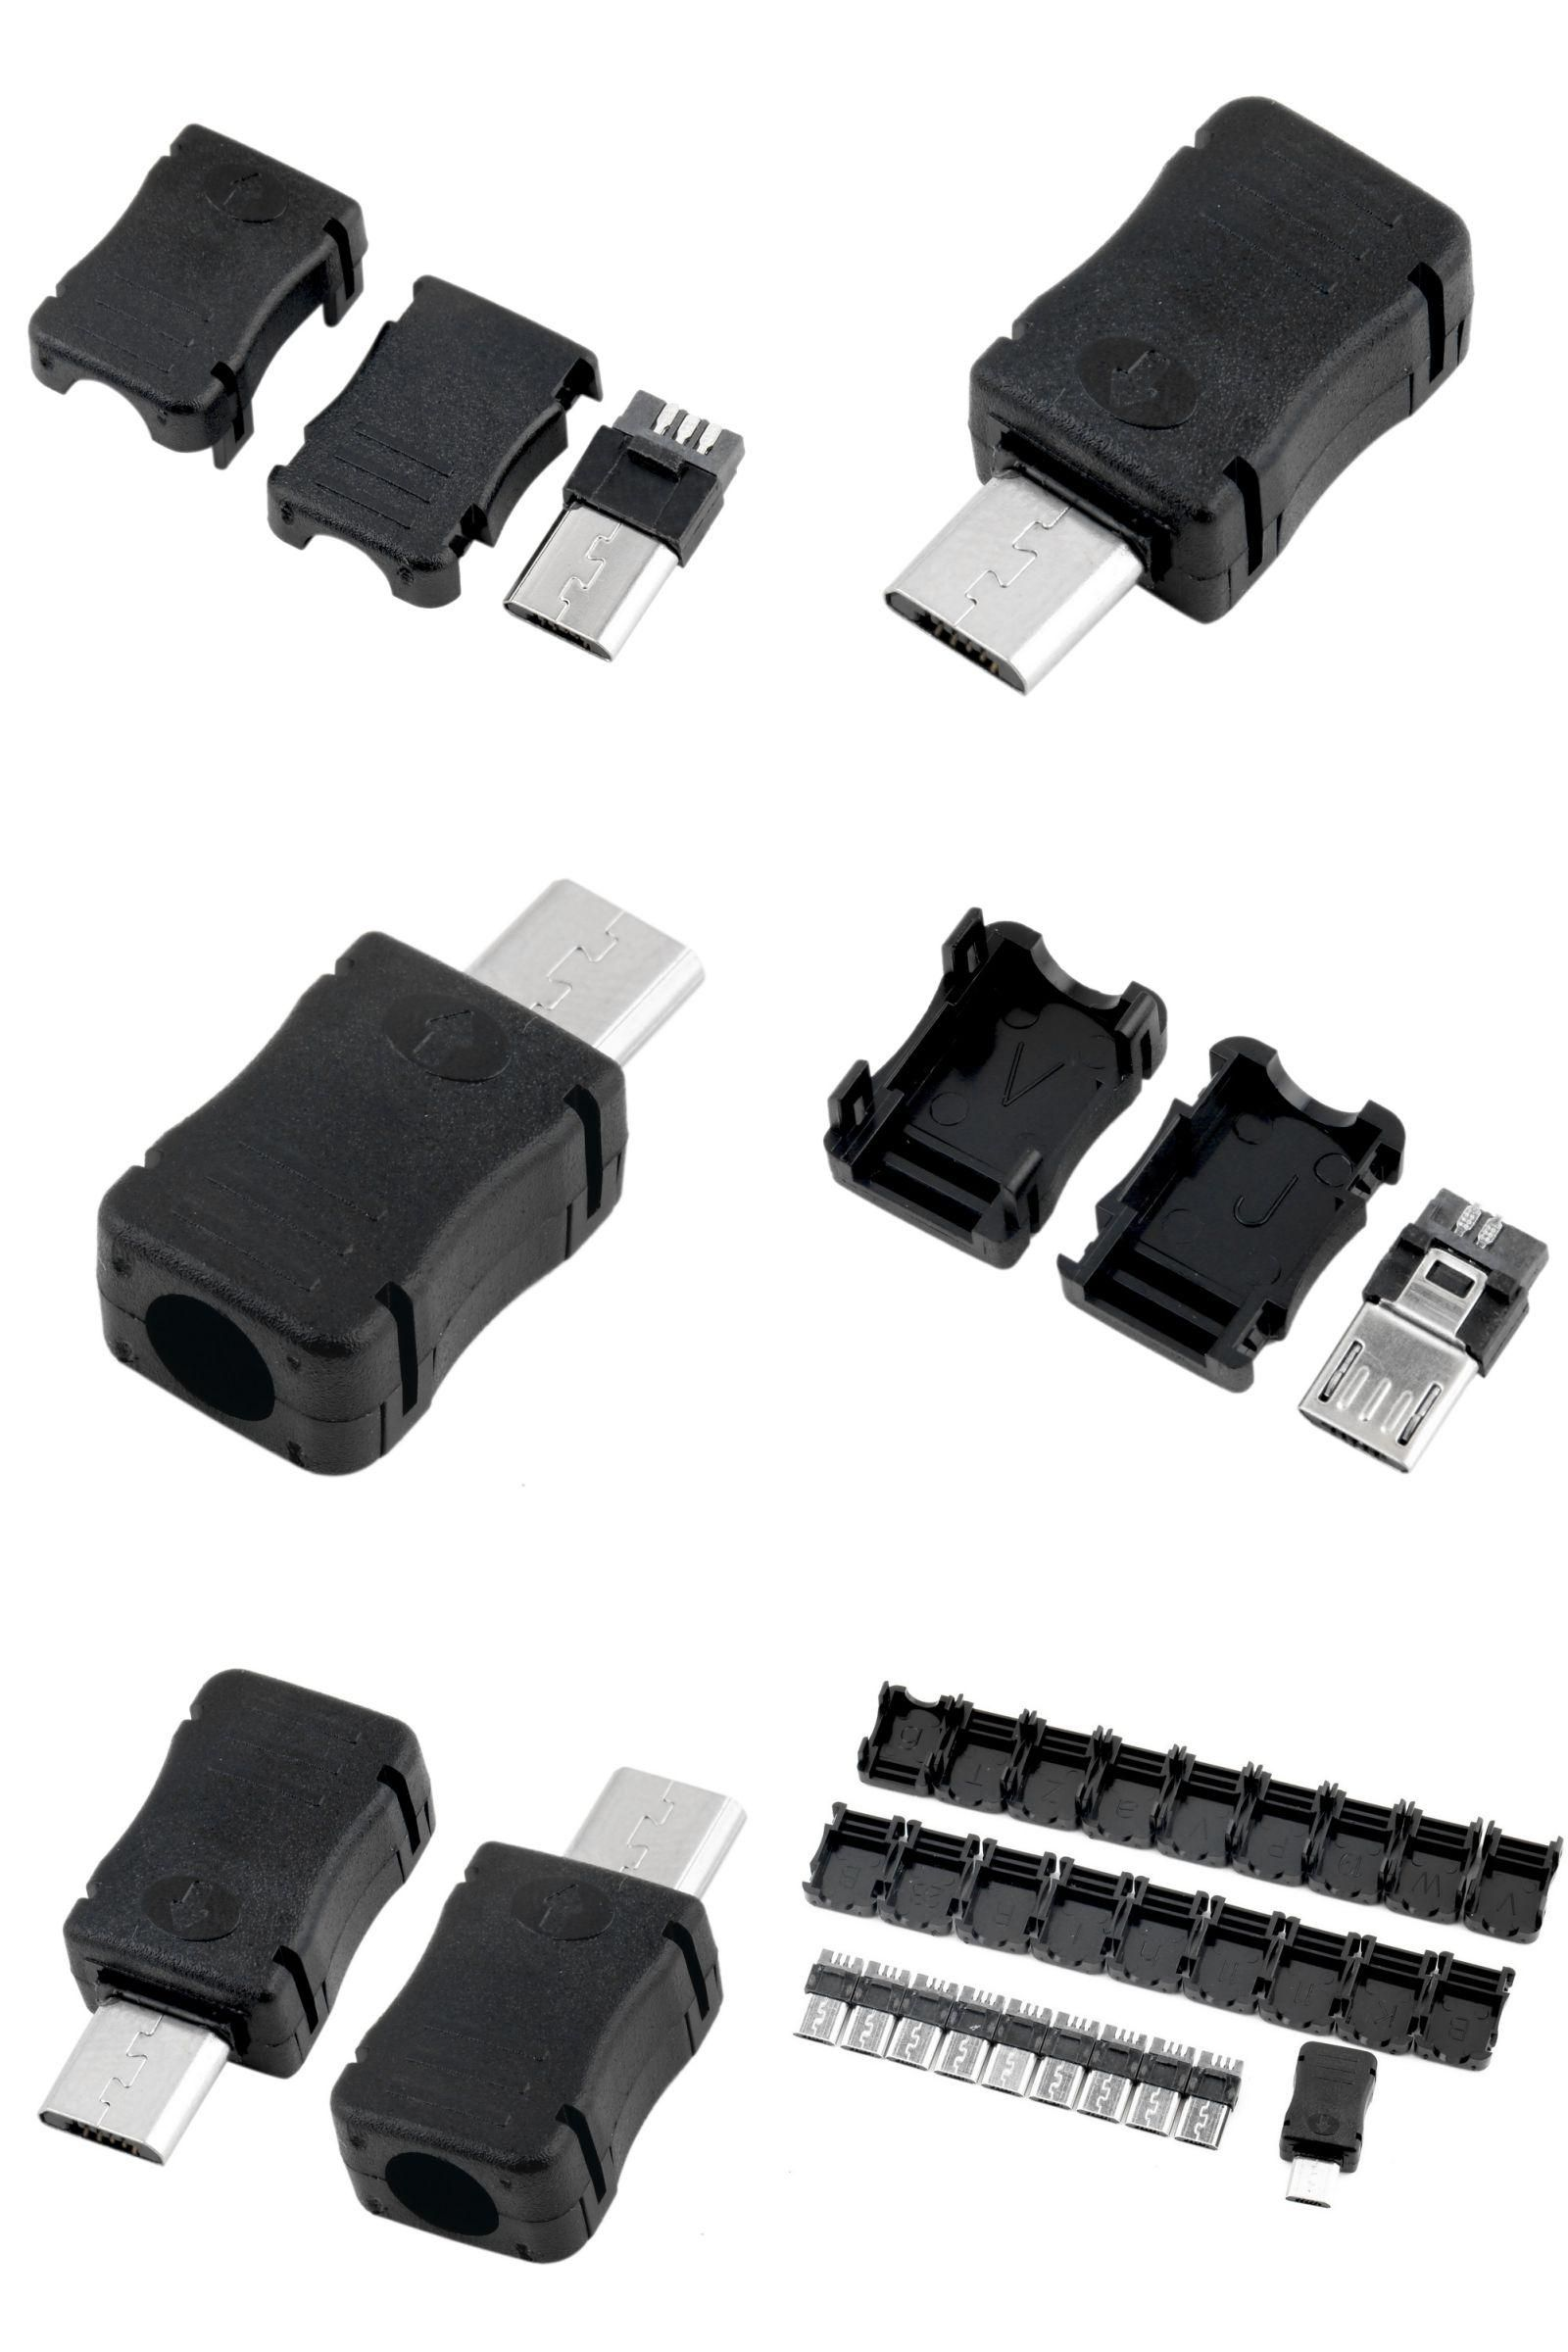 100 PCS DIY Micro USB 5 Pin T Port Male Plug Socket Connector